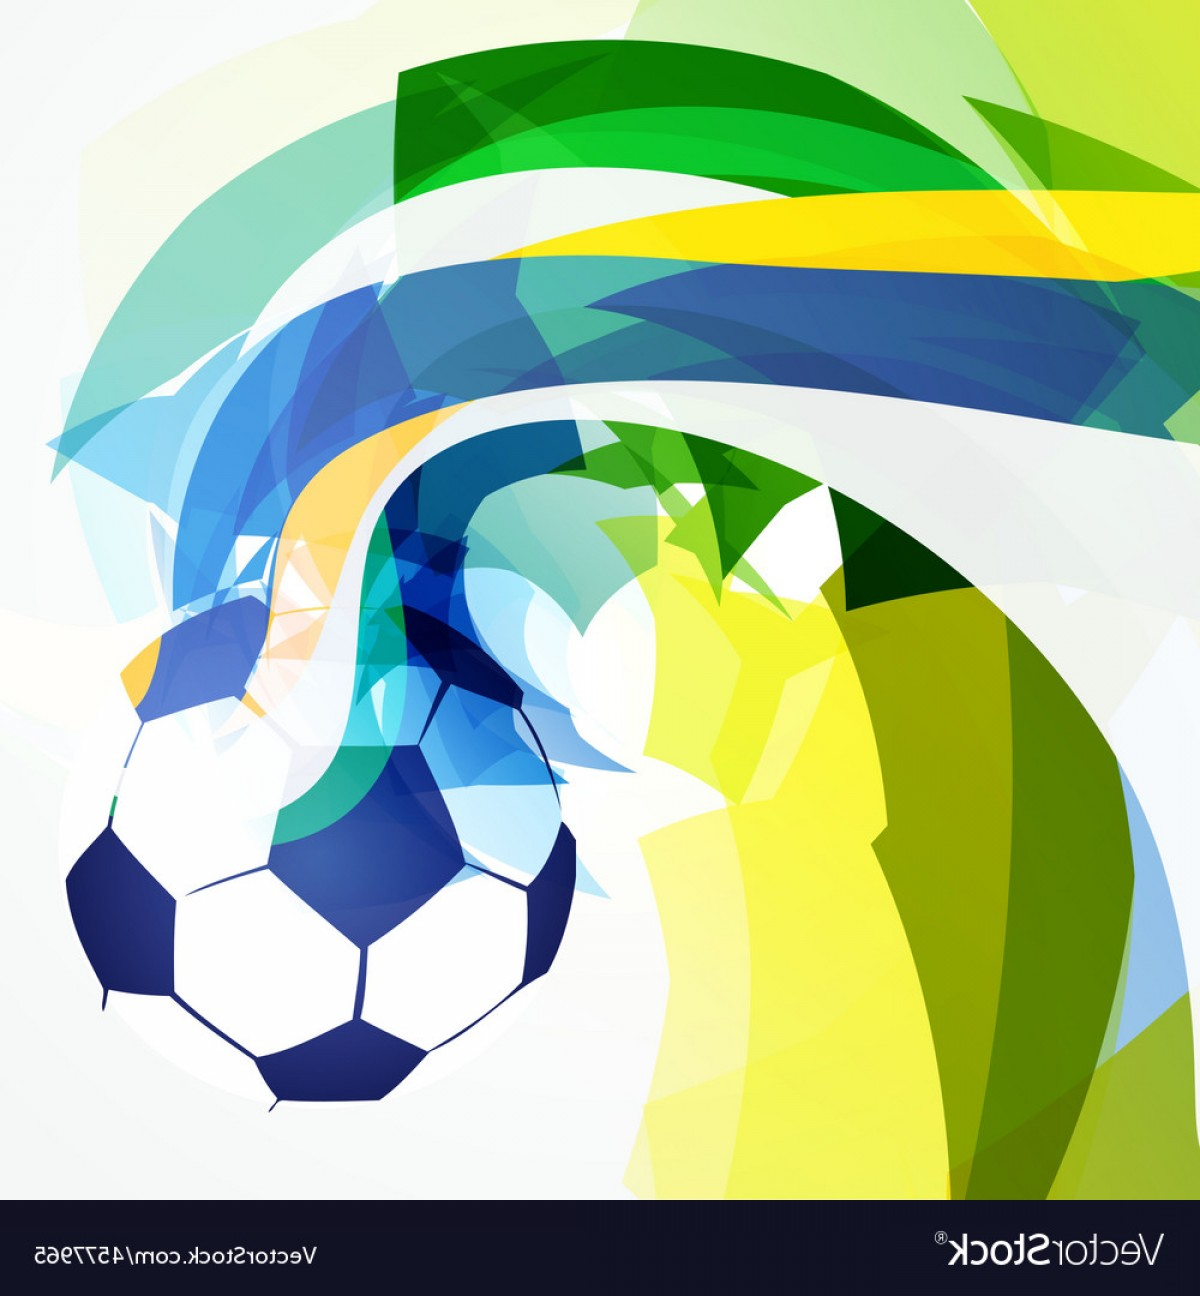 Stylish Abstract Football Design Vector.